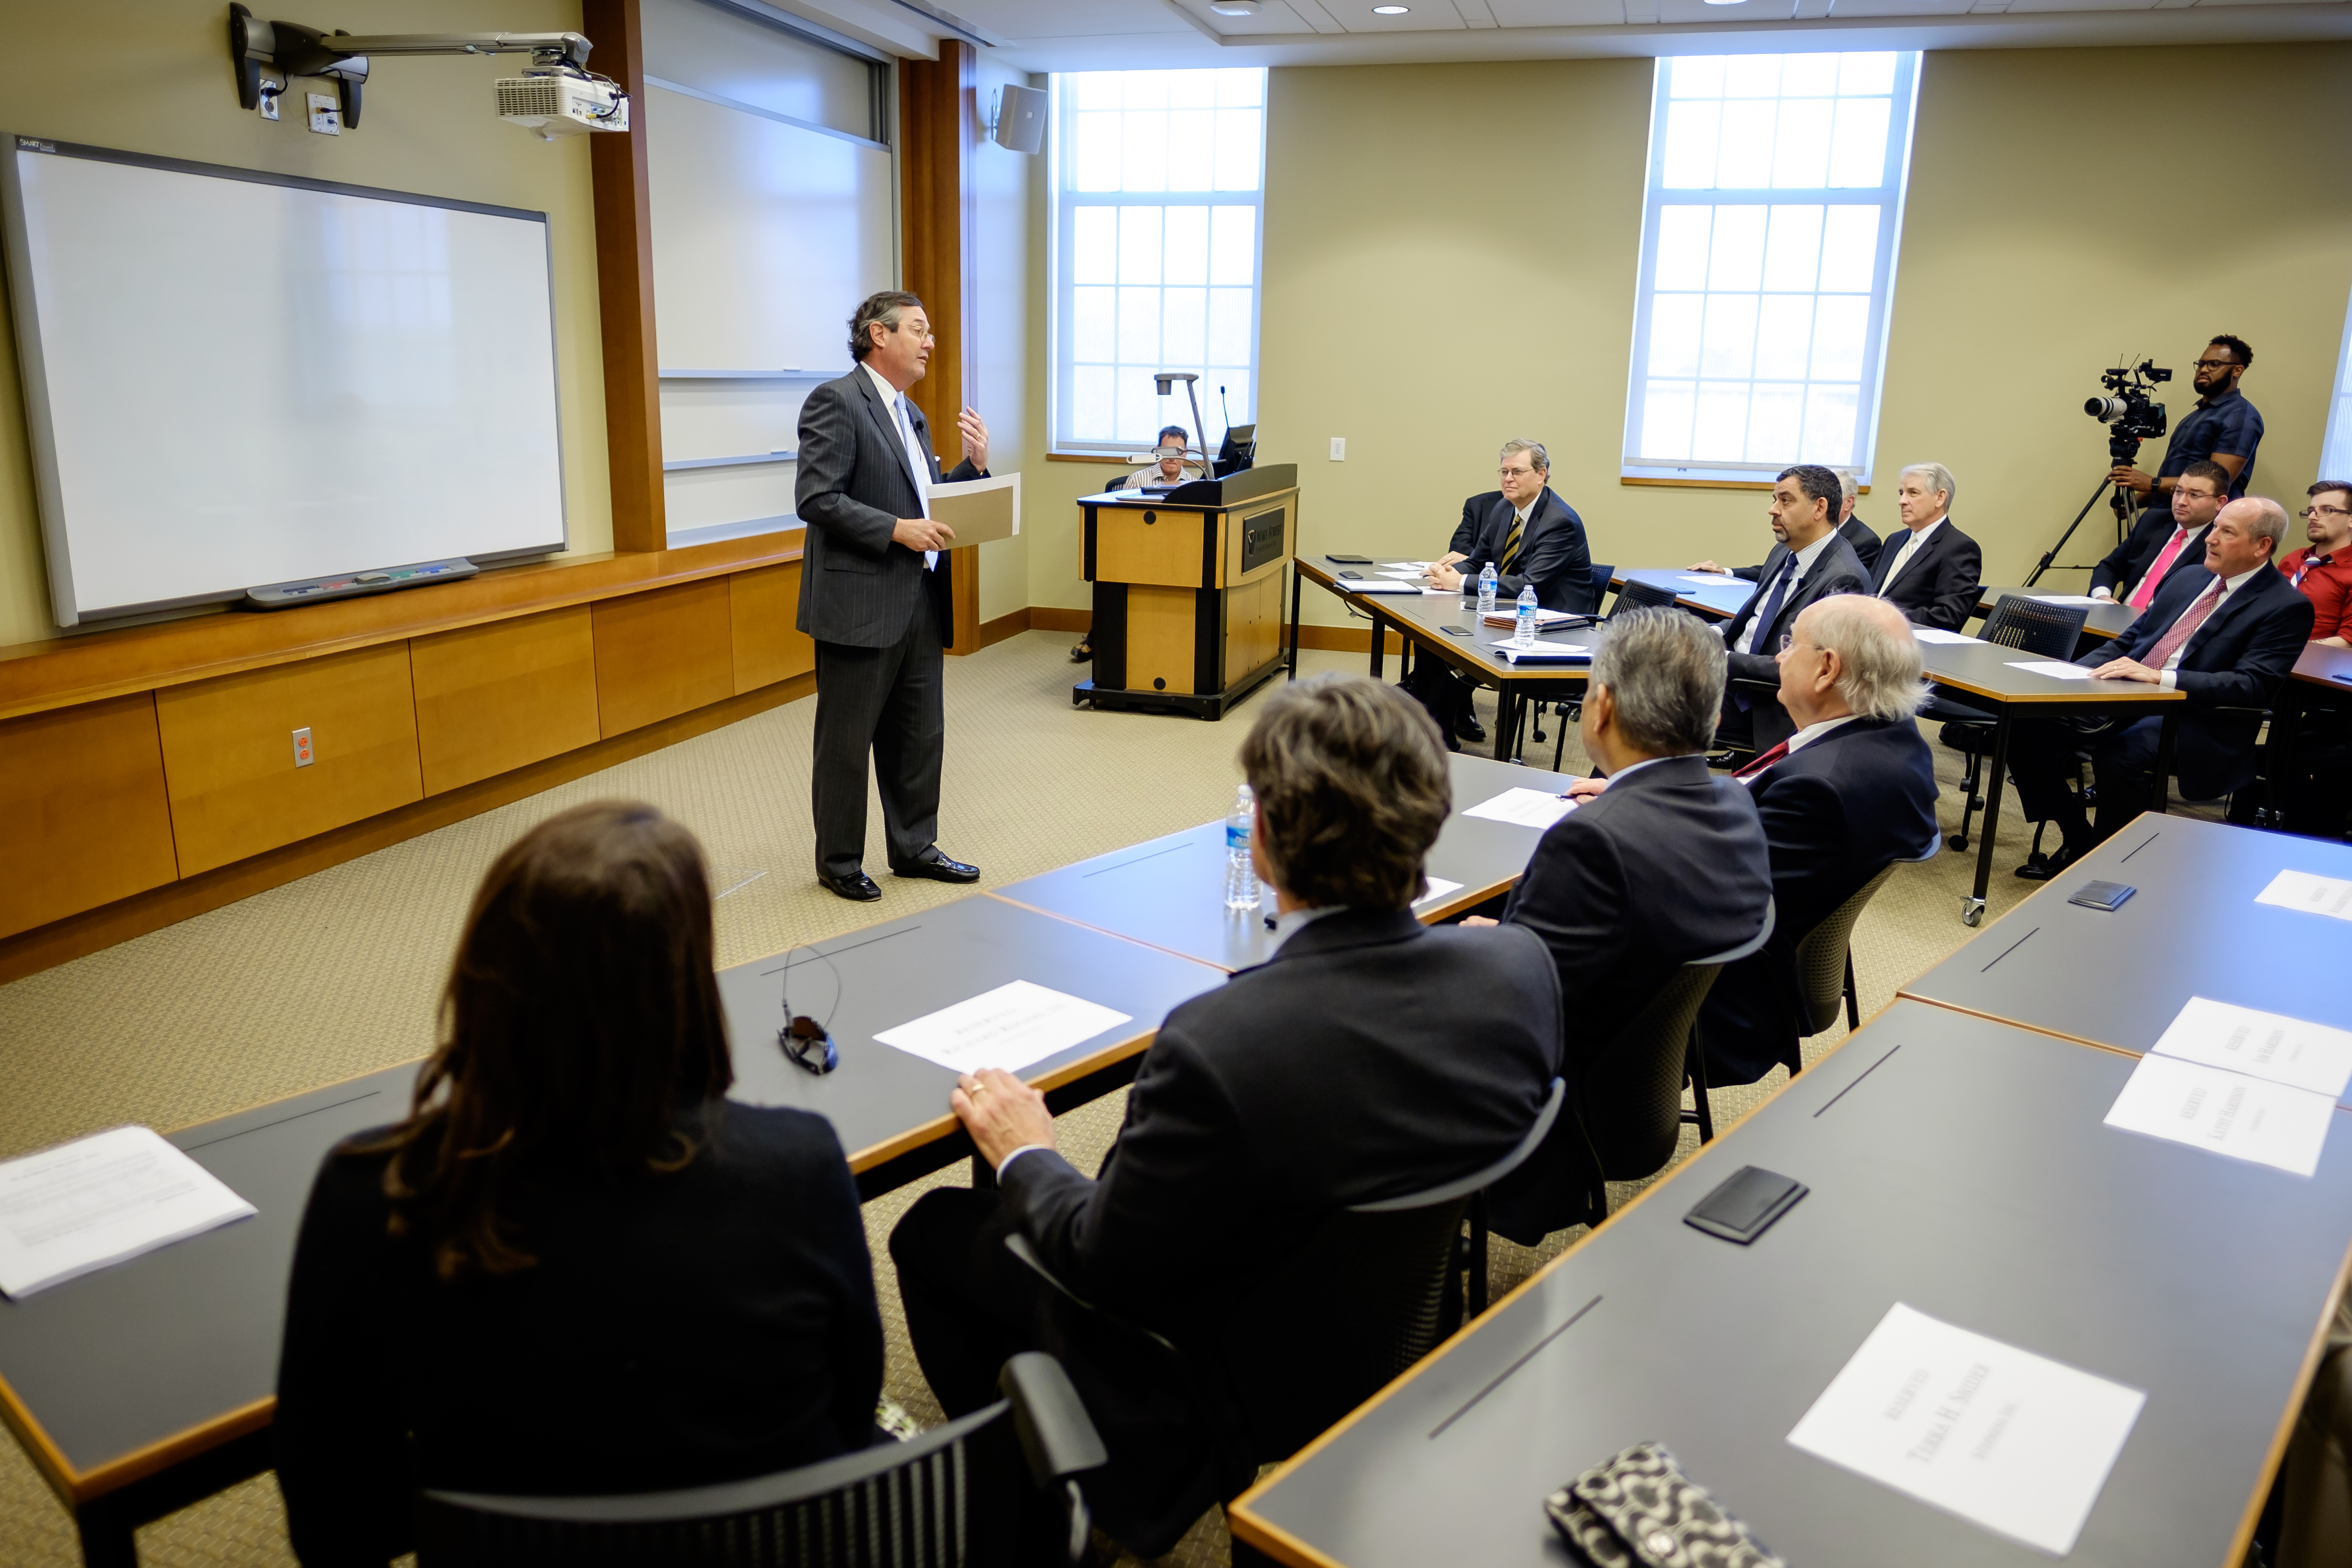 Wake Forest University School of Business alumnus Warren Stephens (MBA '81) gives a talk about his business in Farrell Hall on Wednesday, March 23, 2016.